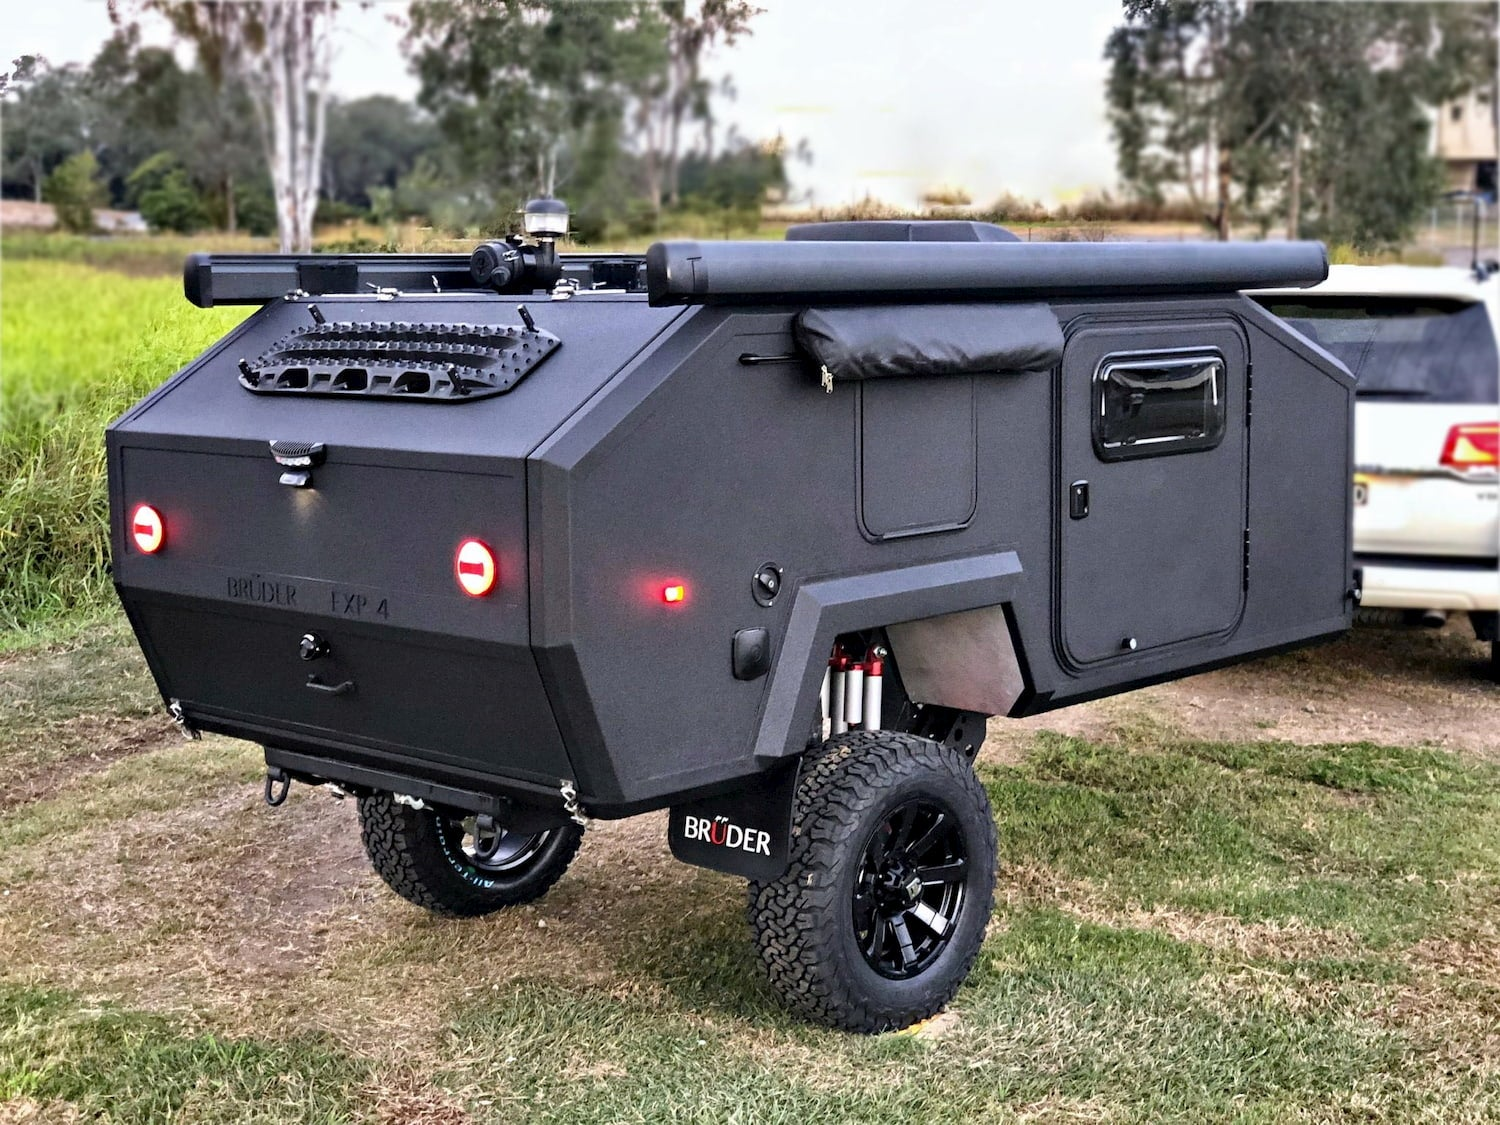 Bruder off-road trailer